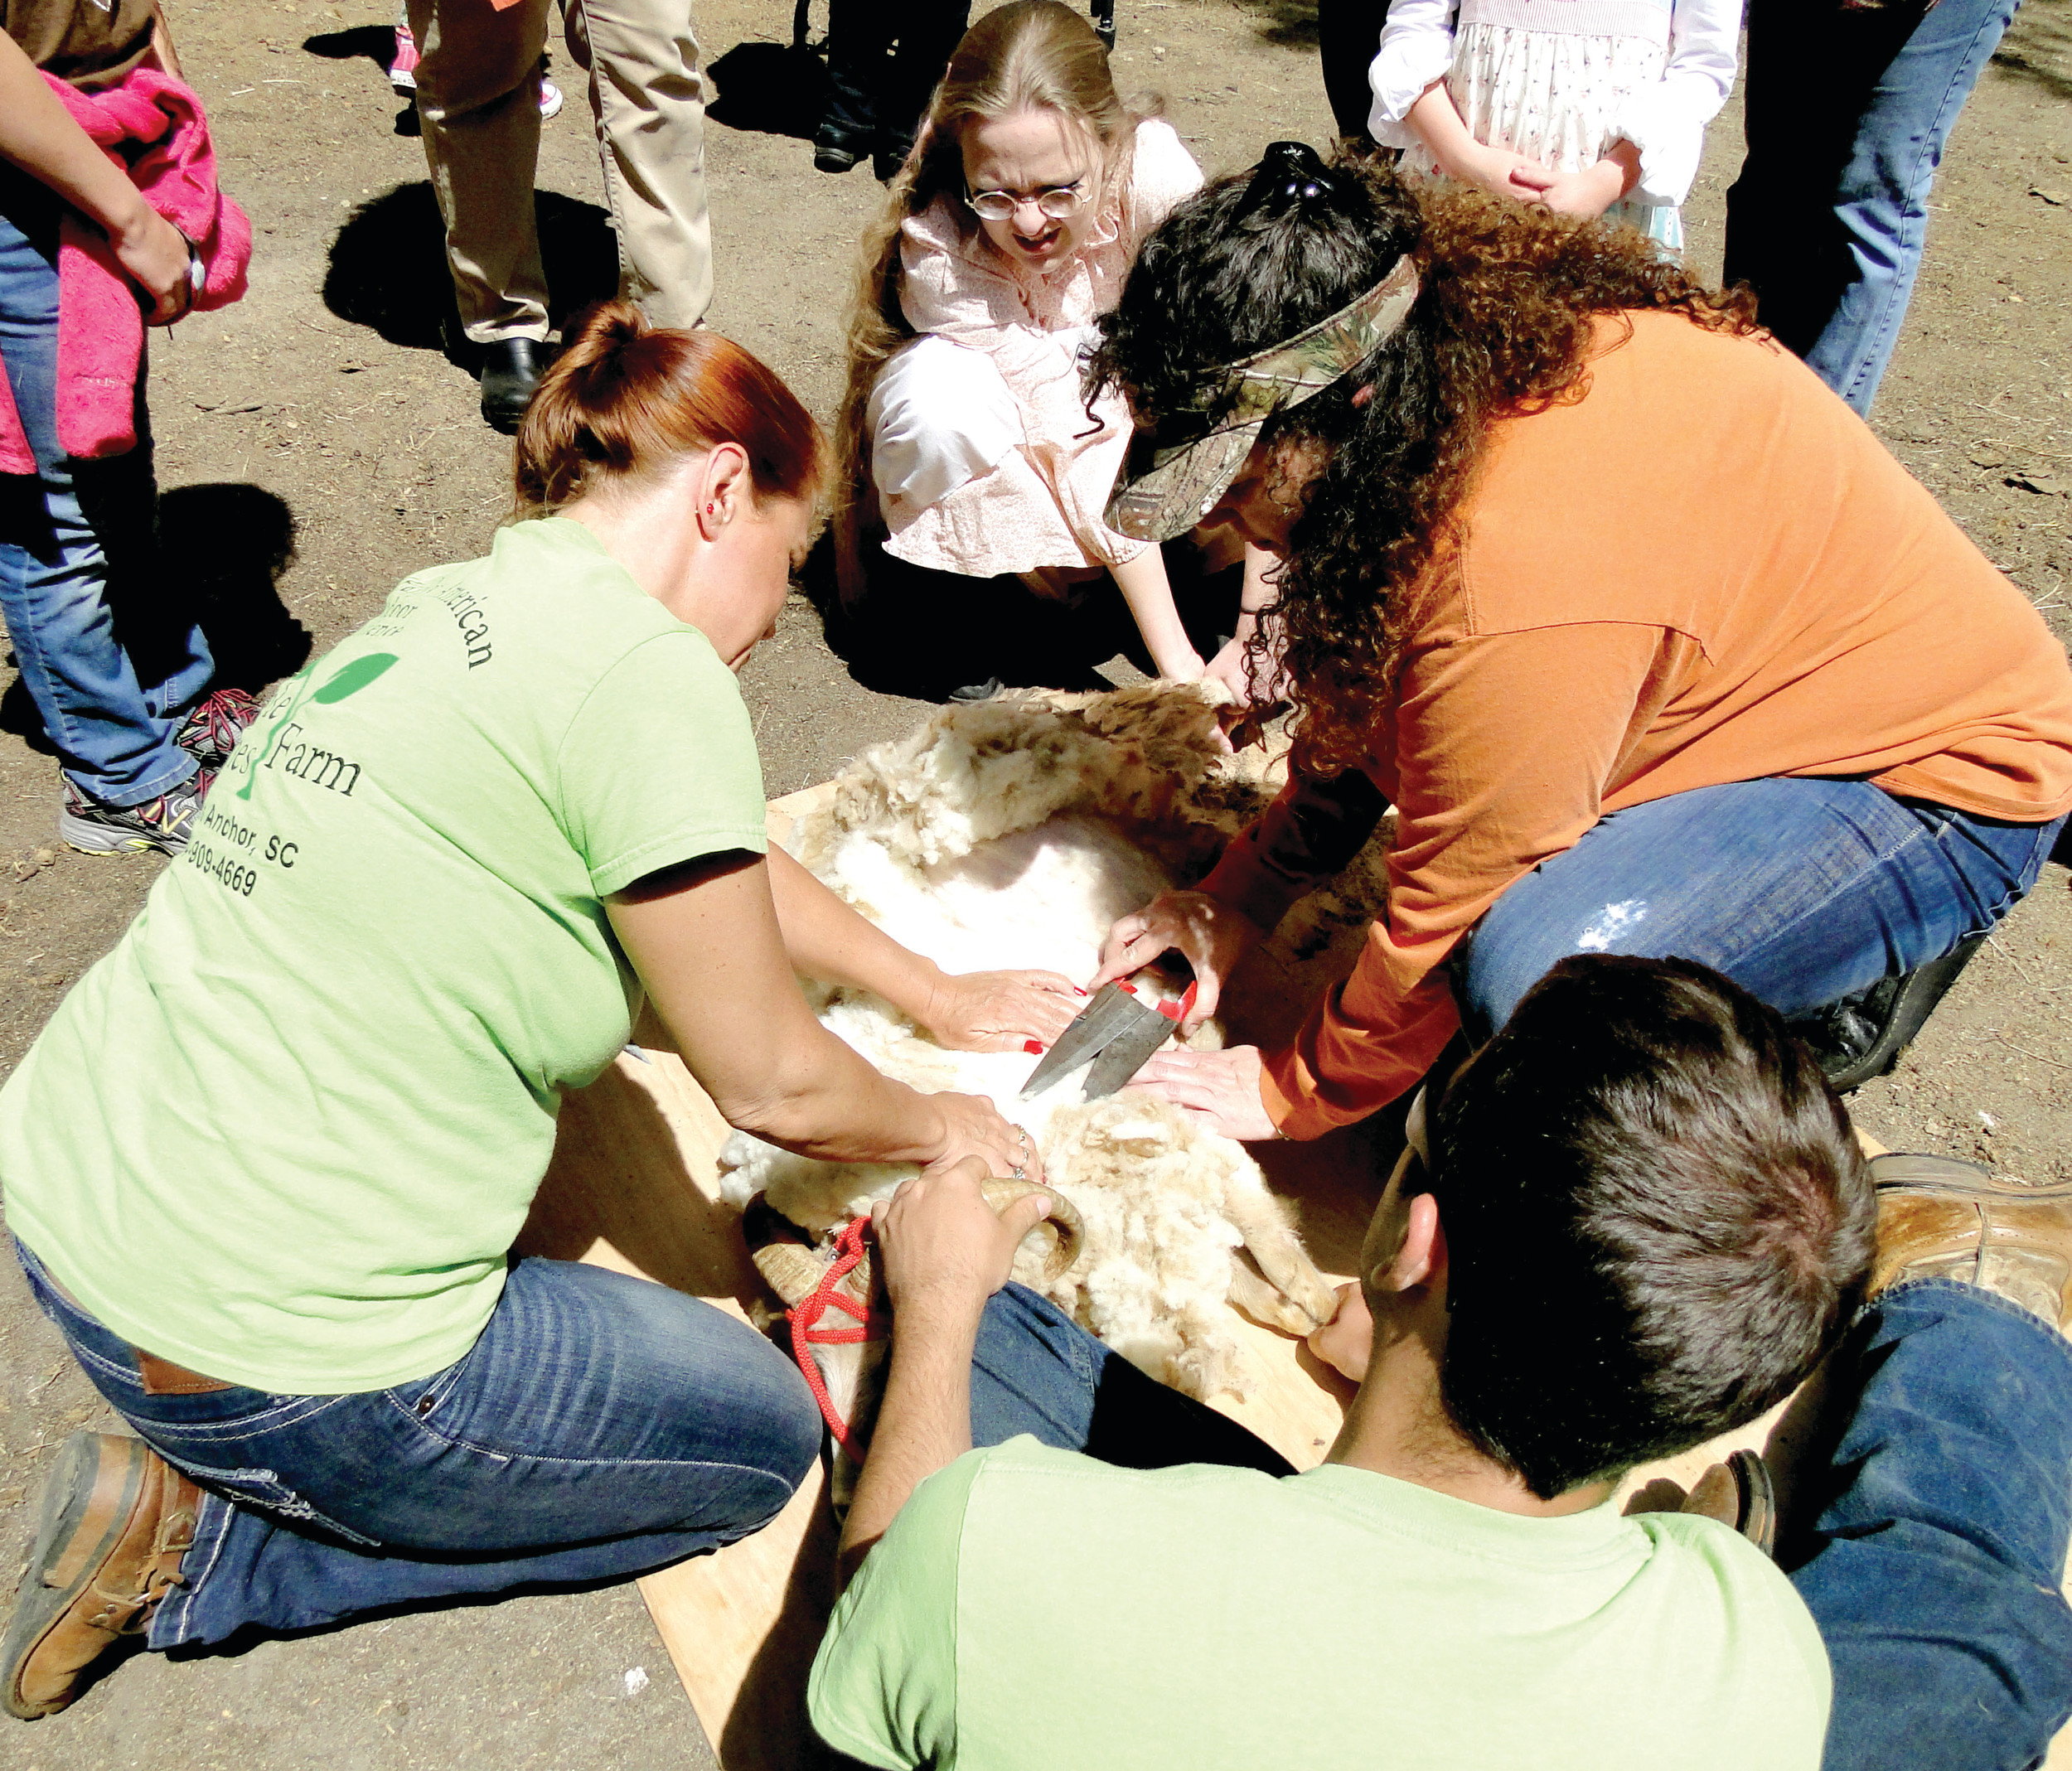 Sandra Kay, left, of Simple Times Farm in Cross Anchor, teaches Jacqui Clarke of Cheraw how to shear a sheep the old-fashioned way. Sheep will get their once-a-year shearing Saturday, and Old McCaskill's Farm at Rembert invites the public to come observe and participate in other activities on the working farm. Border collie demonstrations and fresh farm concessions are also on the agenda for the 10 a.m. to 6 p.m. event.